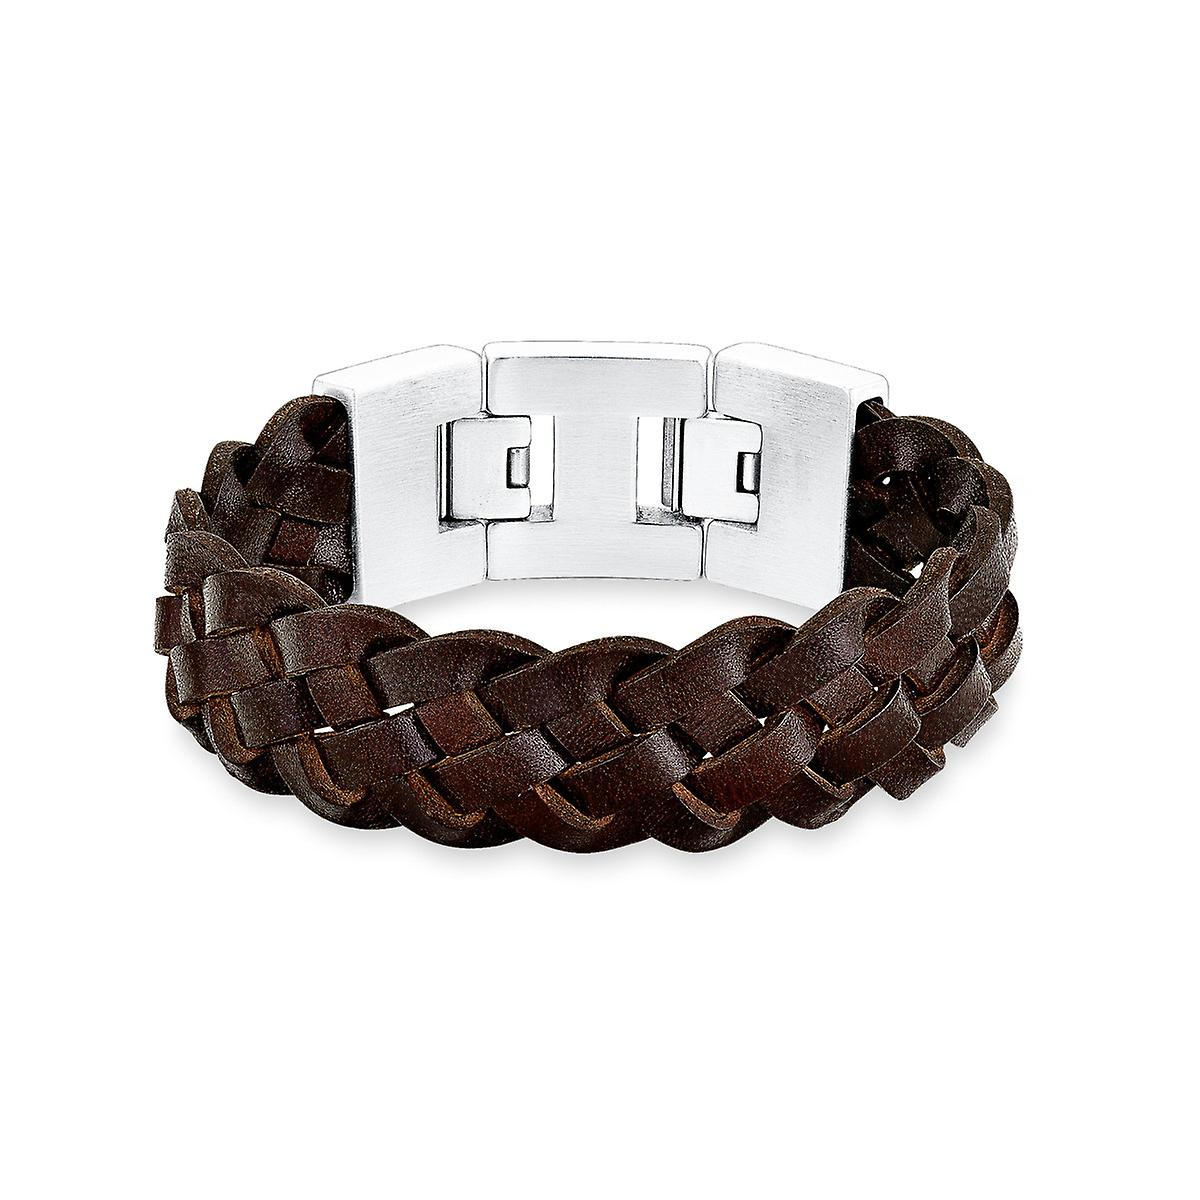 s.Oliver jewel mens leather bracelet stainless steel SO1289/1 - 9067145